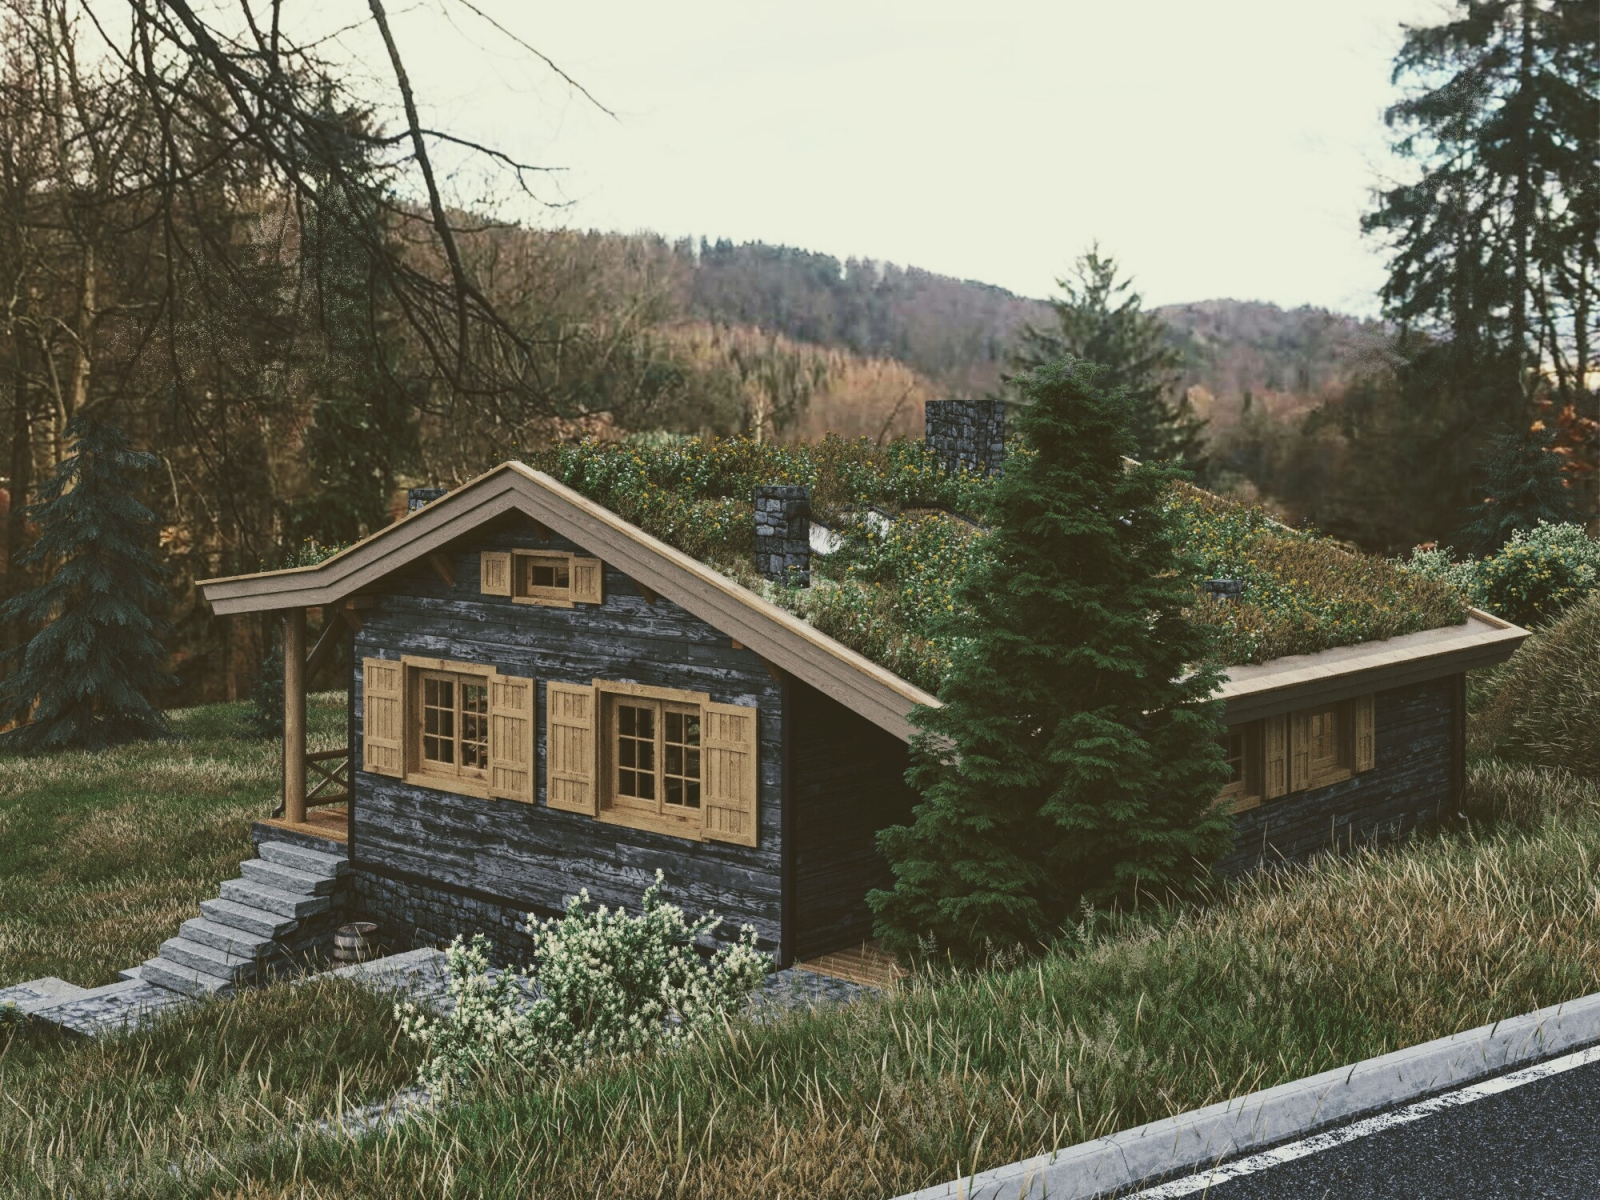 Visualization of a Wooden House in the Forest